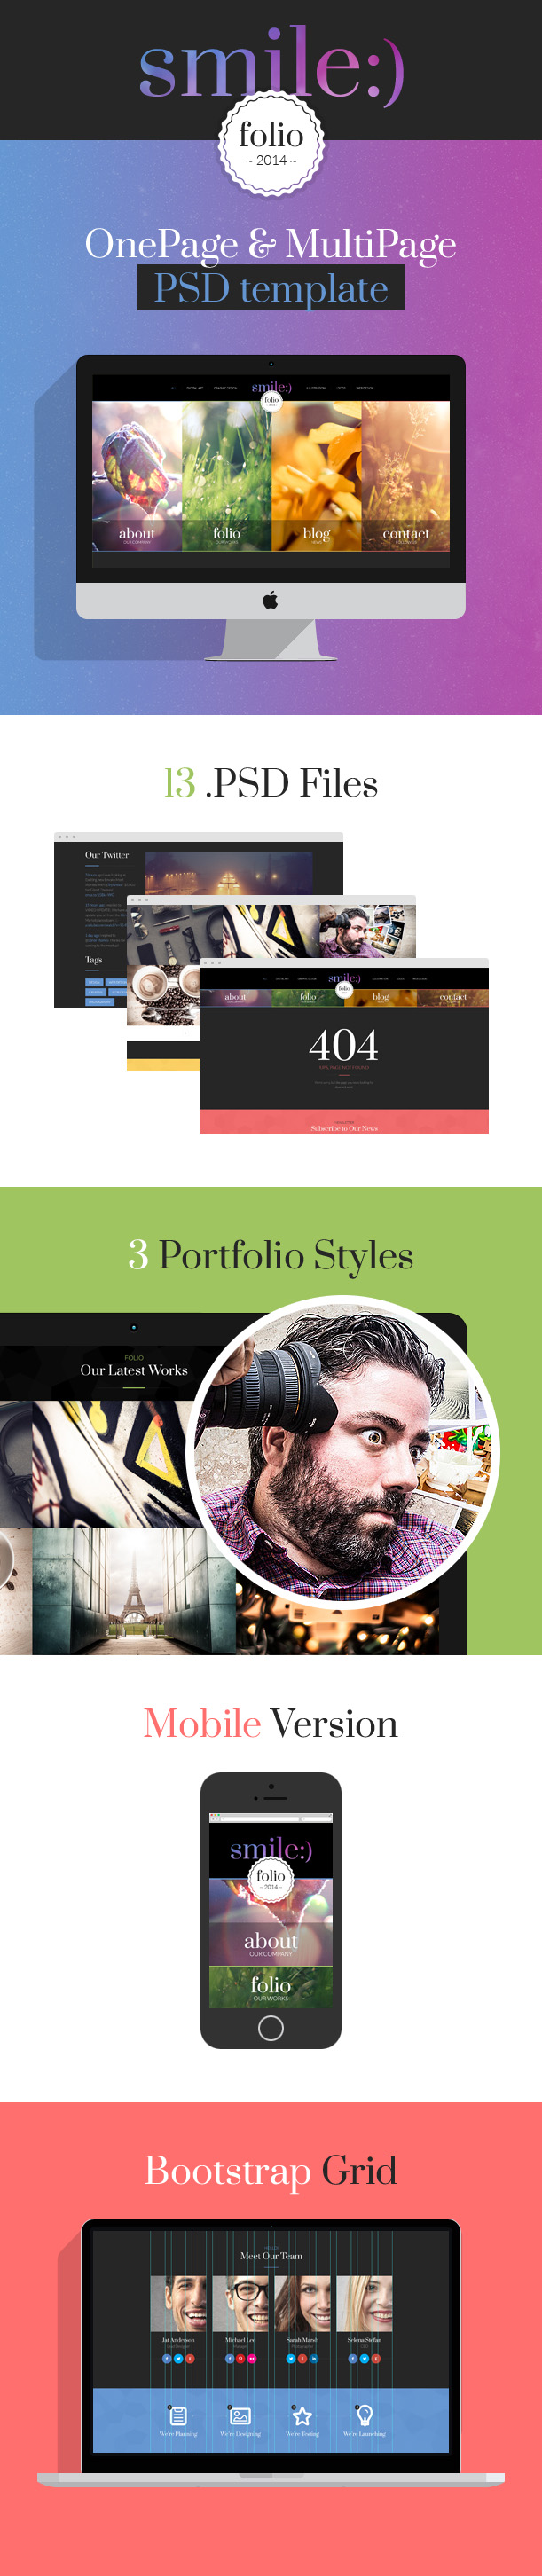 smile PSD bootstrap template